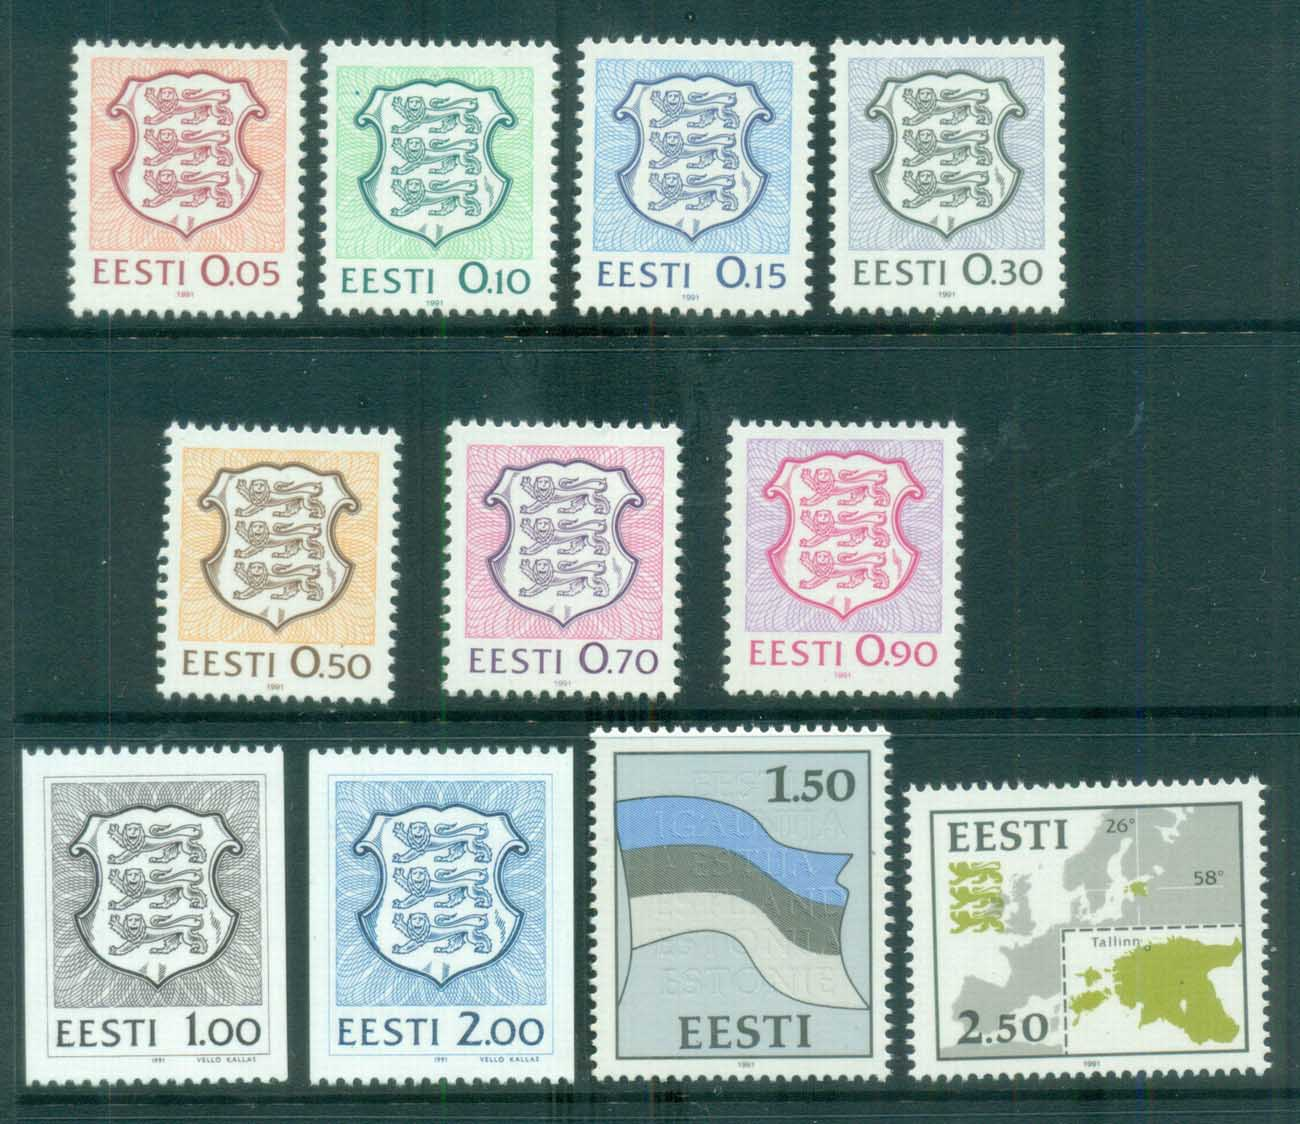 Estonia 1992 Definitives, Map, Arms, Flag (10) MUH